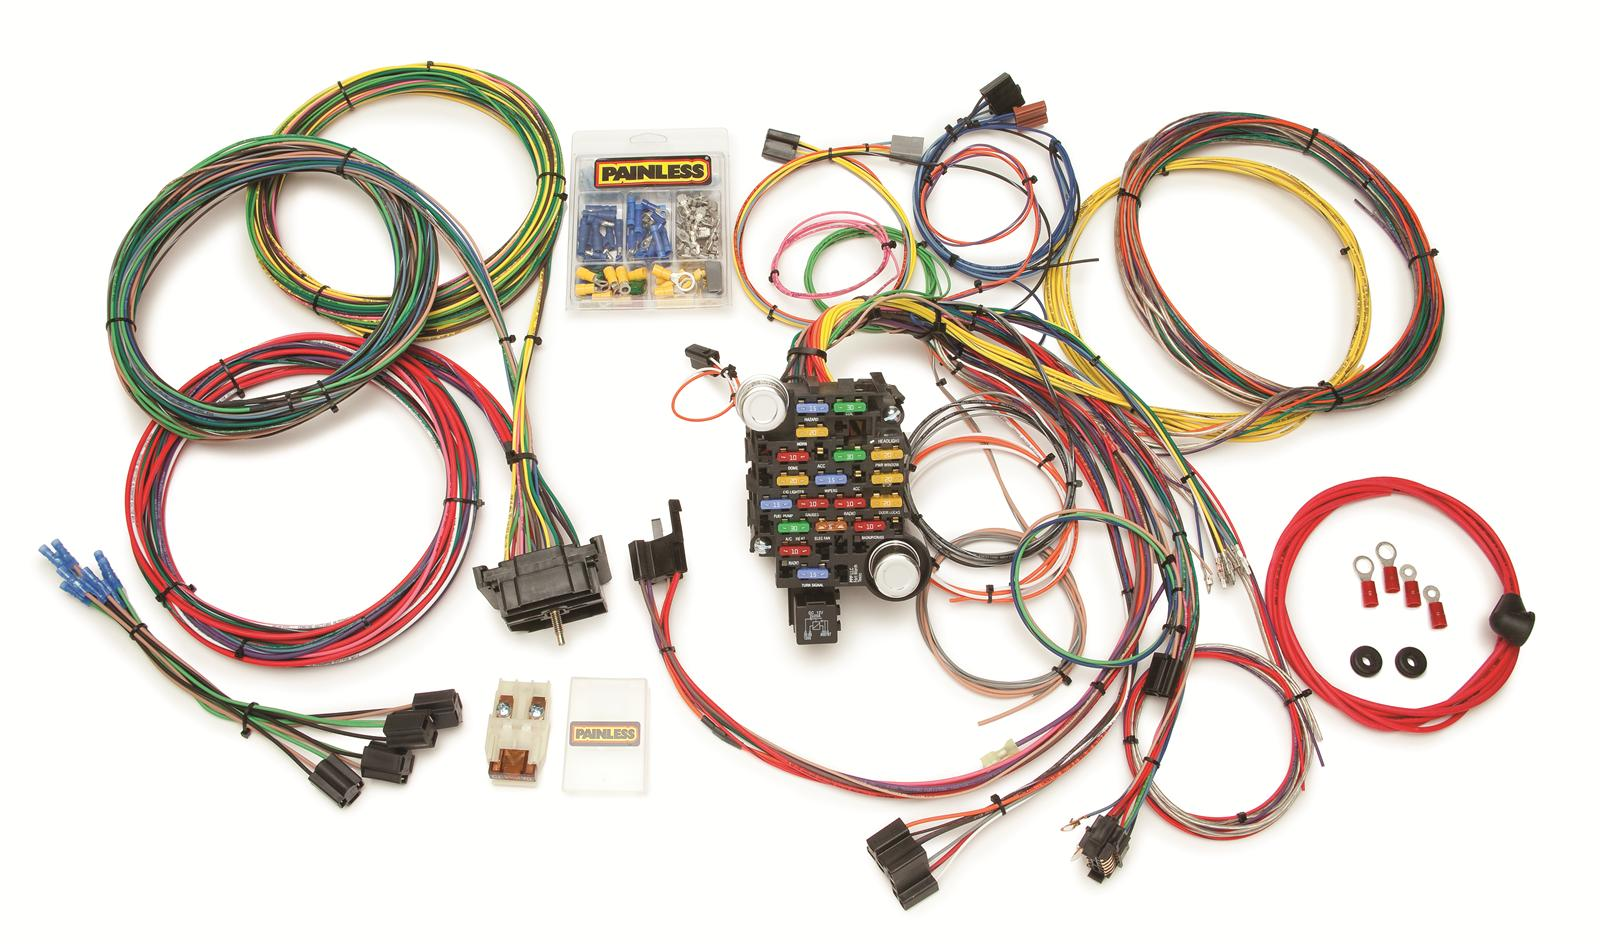 prf 10206_xl painless performance gmc chevy truck harnesses 10206 free painless wiring harness rebate at creativeand.co